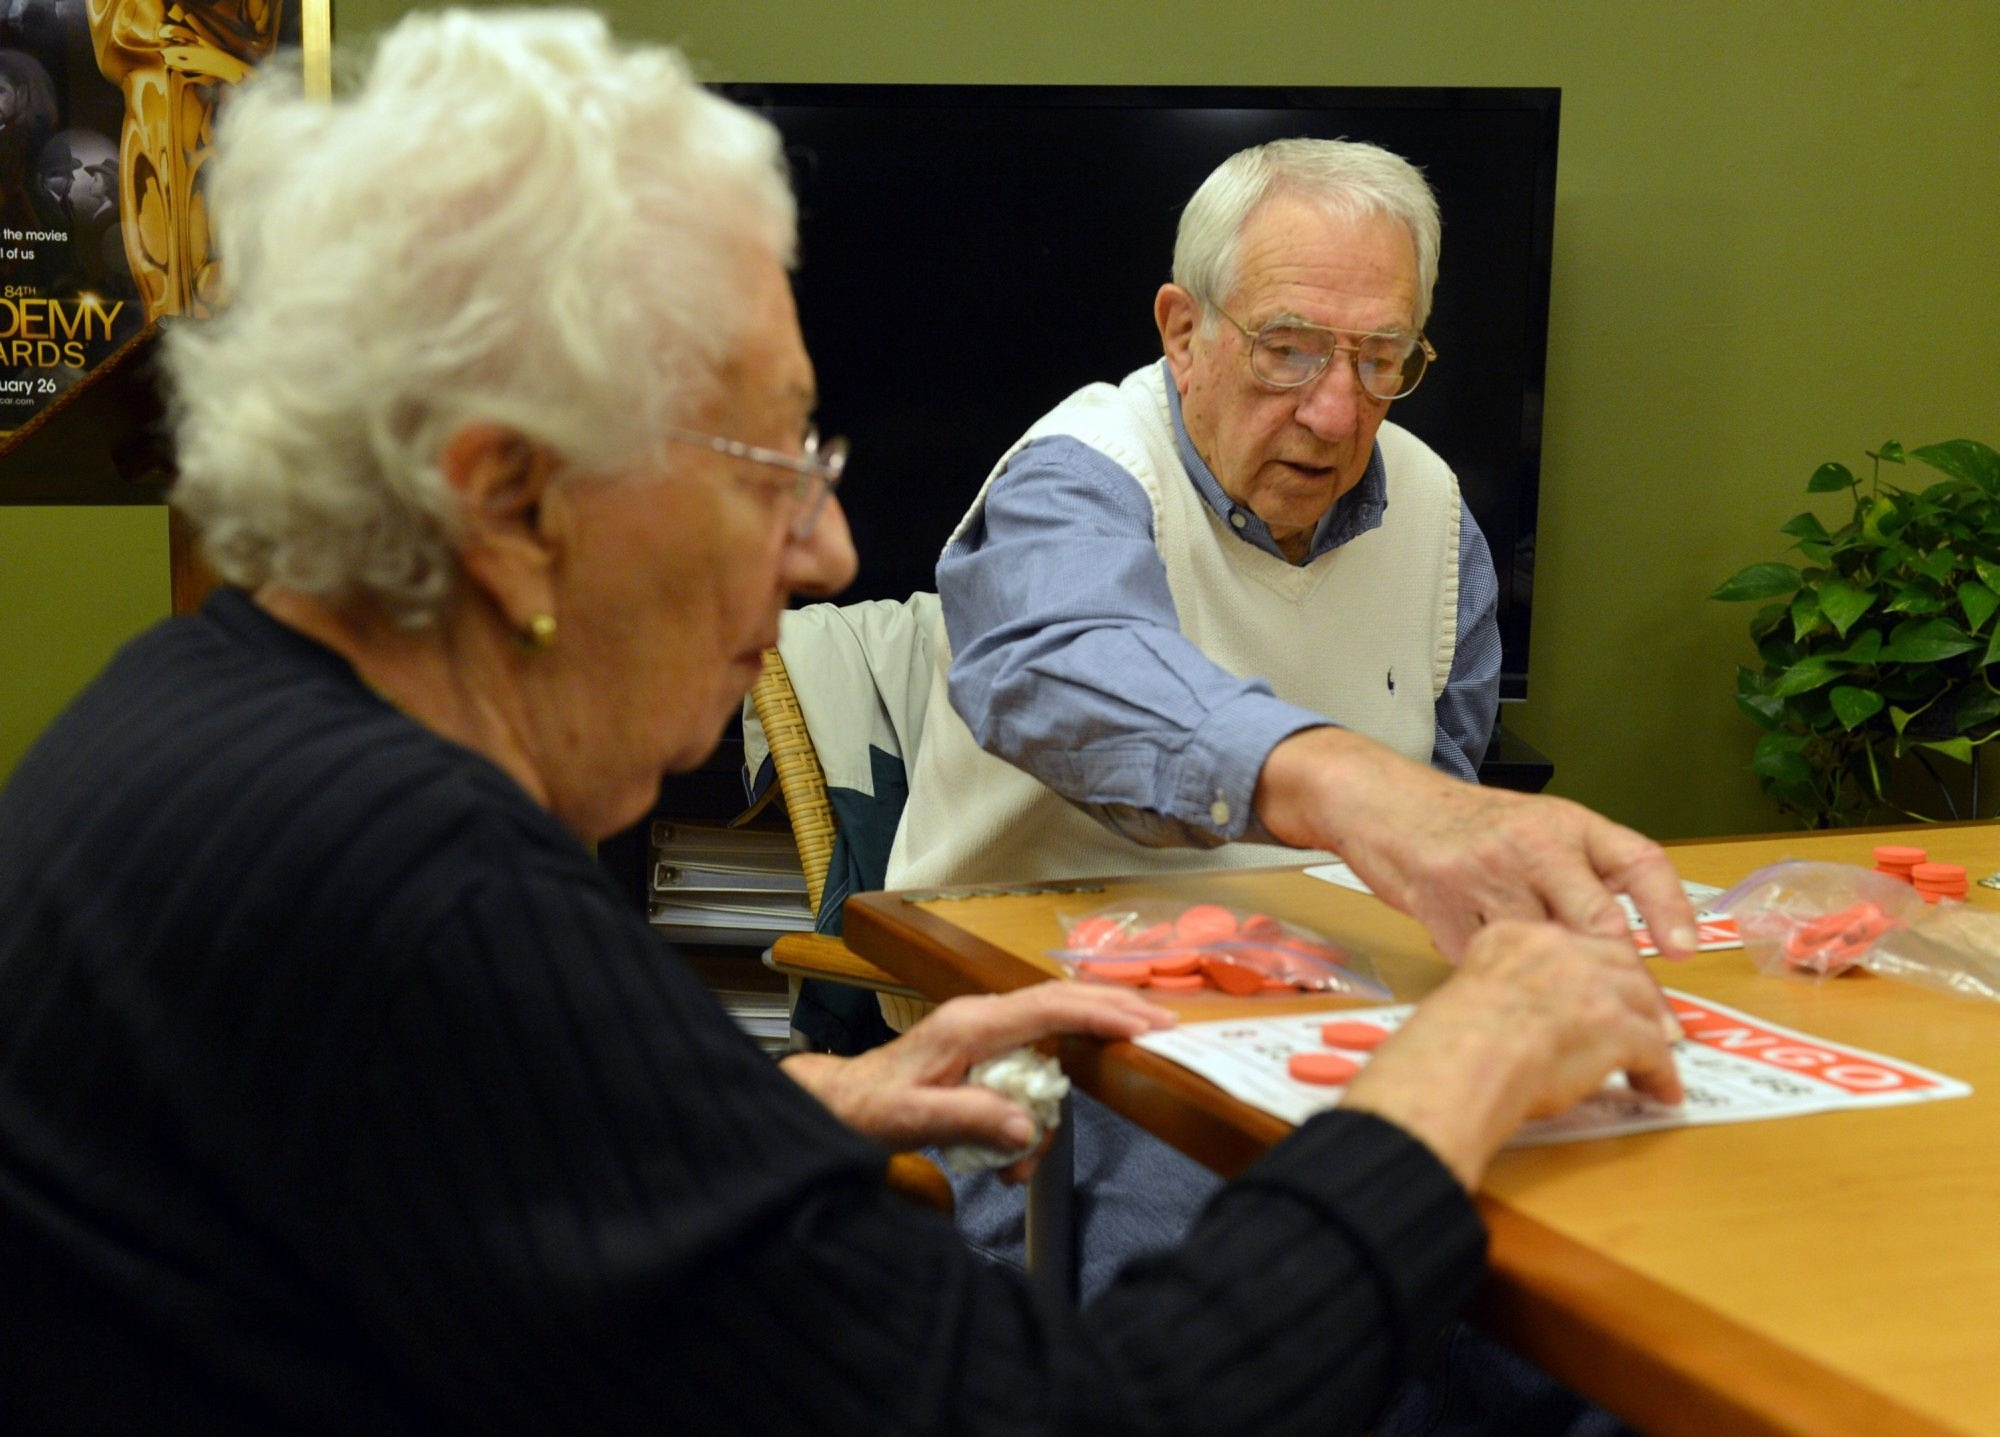 Harry Baron and his wife, Claire, play bingo at Arbor Terrace, an assisted living community in Marietta, Ga. Harry is still active, but his wife requires the assisted care of a nursing home.